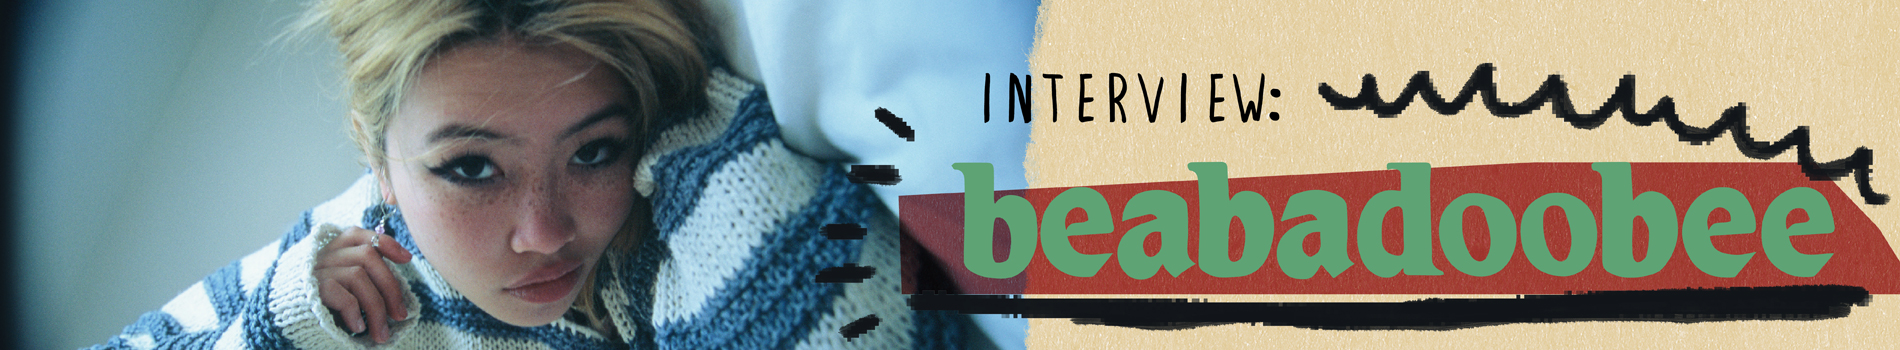 Beabadoobee - Masthead Banner